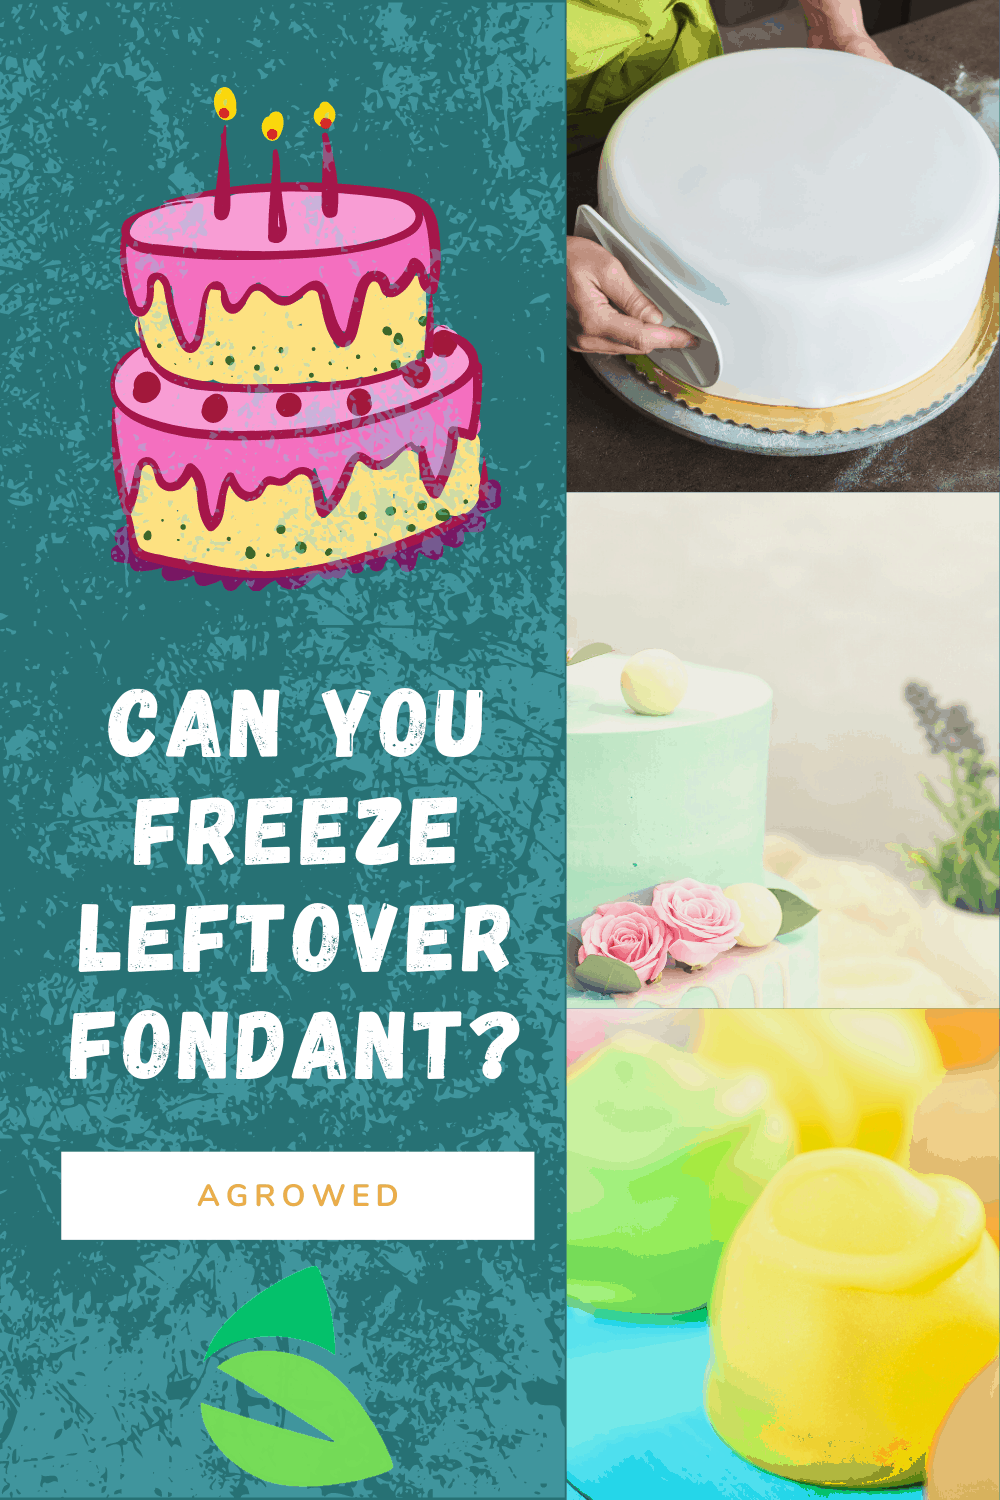 Can You Freeze Leftover Fondant